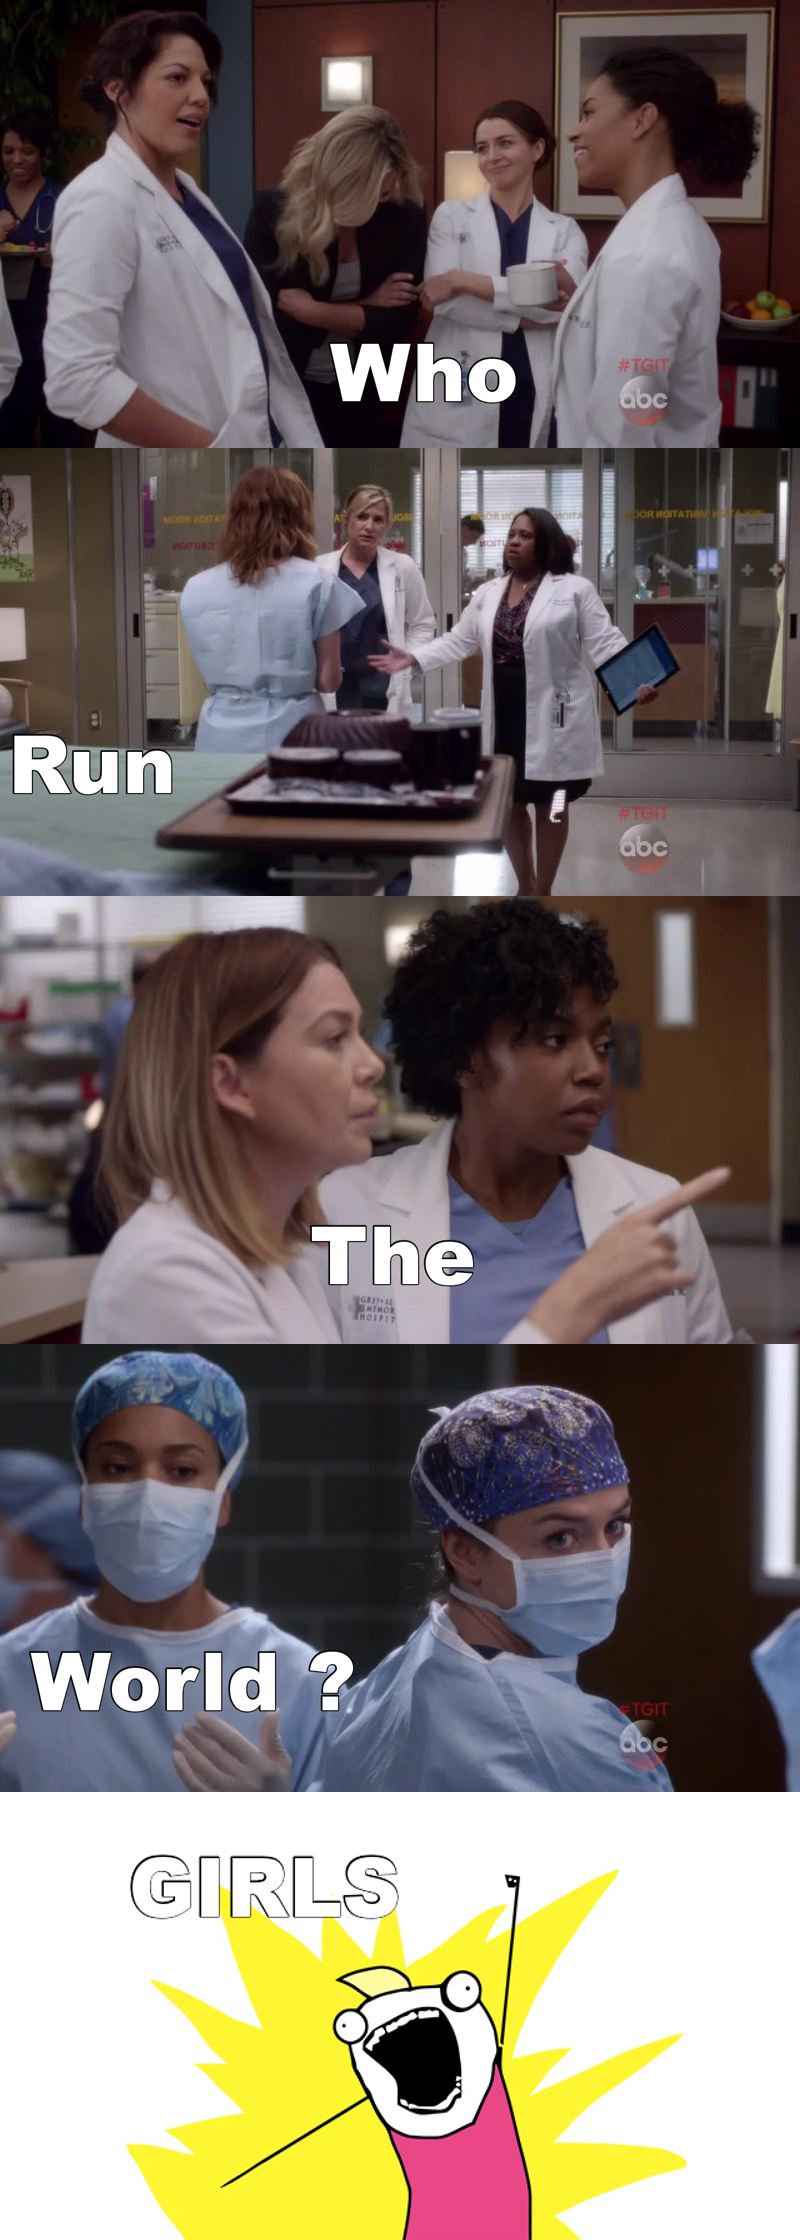 Greeeeeat episode. I'm sad for Japril and Calzona ; I want them together 😪